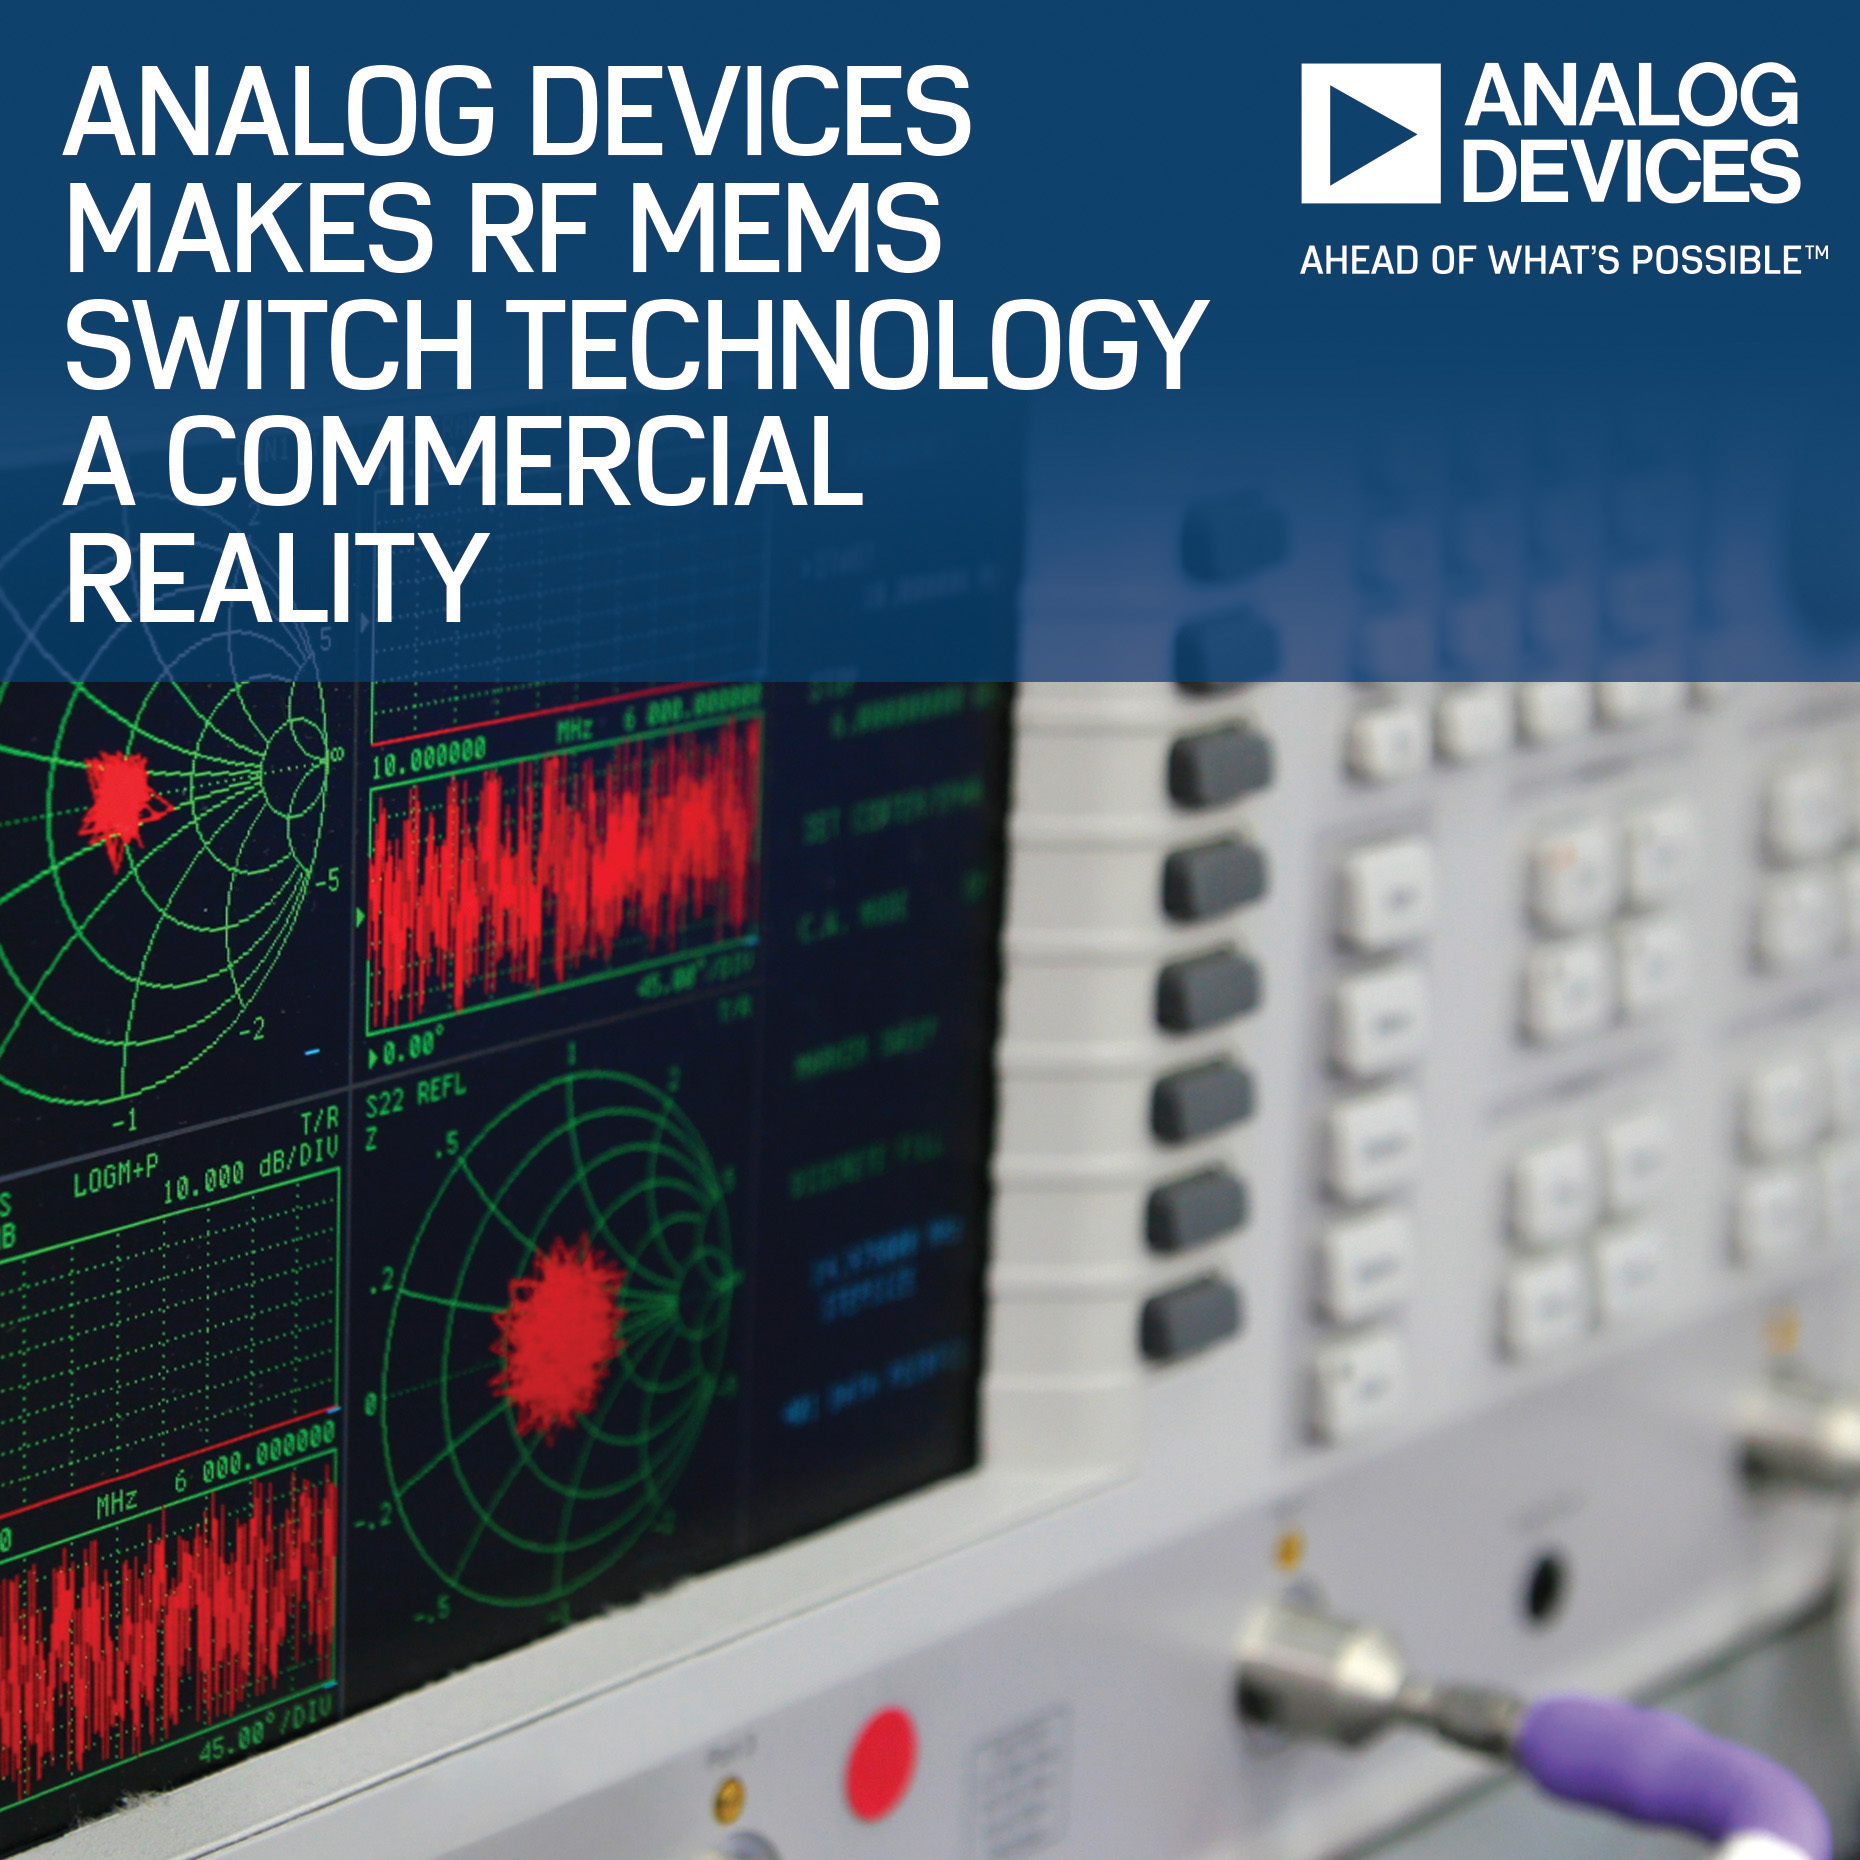 Analog Devices Makes MEMS Switch Technology a Commercial Reality (Photo: Business Wire)